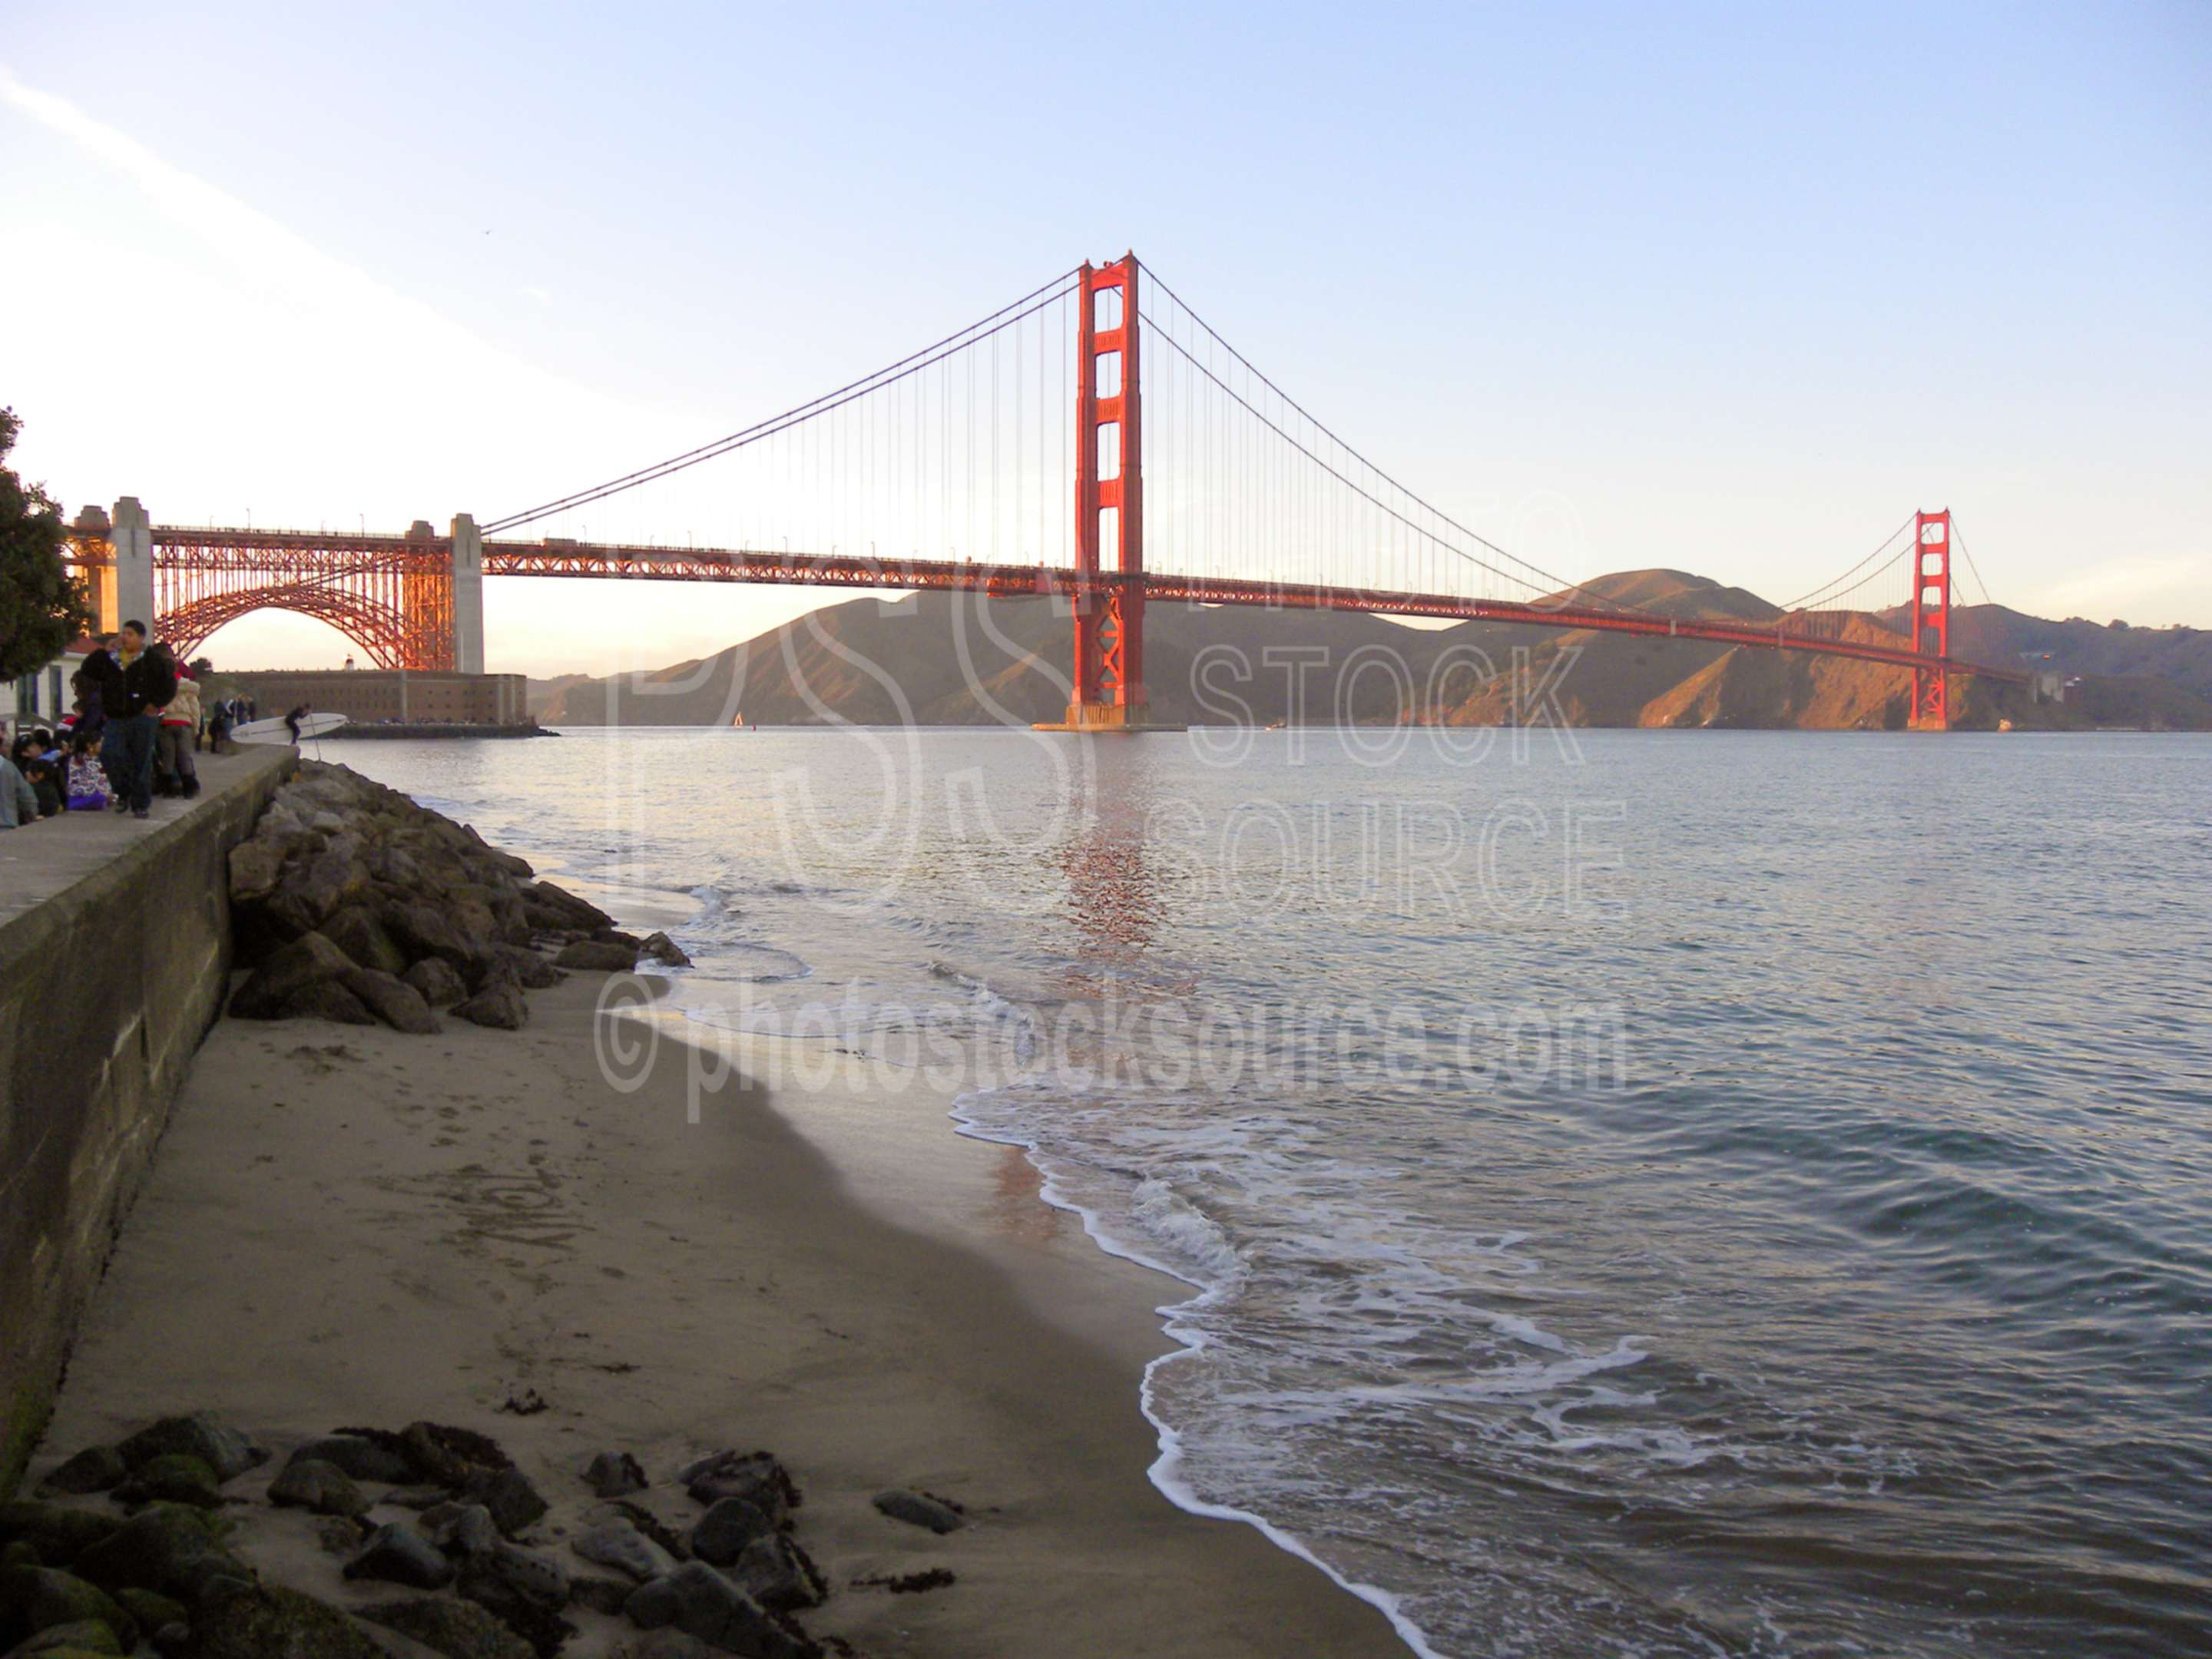 Golden Gate Bridge,bridge,landmark,bay,san francisco bay,suspension bridge,architecture,bridges